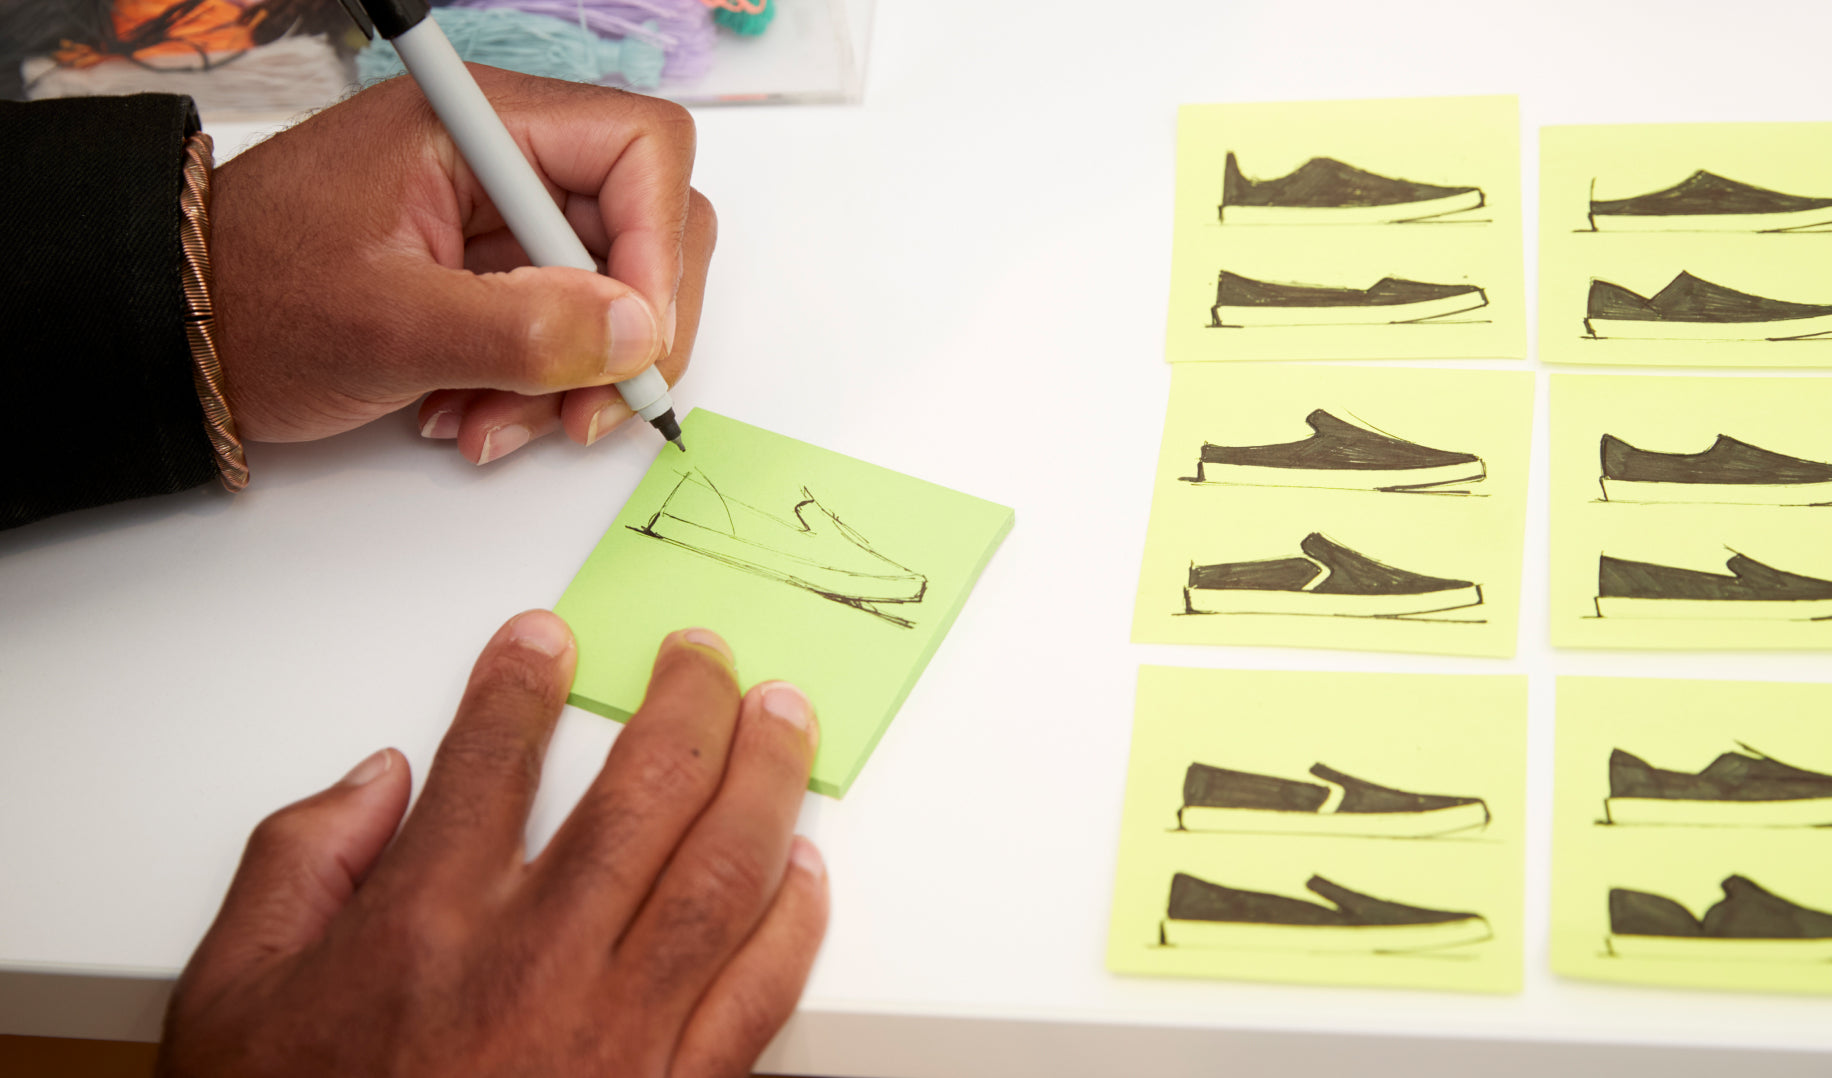 Close up of Lavion sketching designs of The Sneaker on post-it notes.